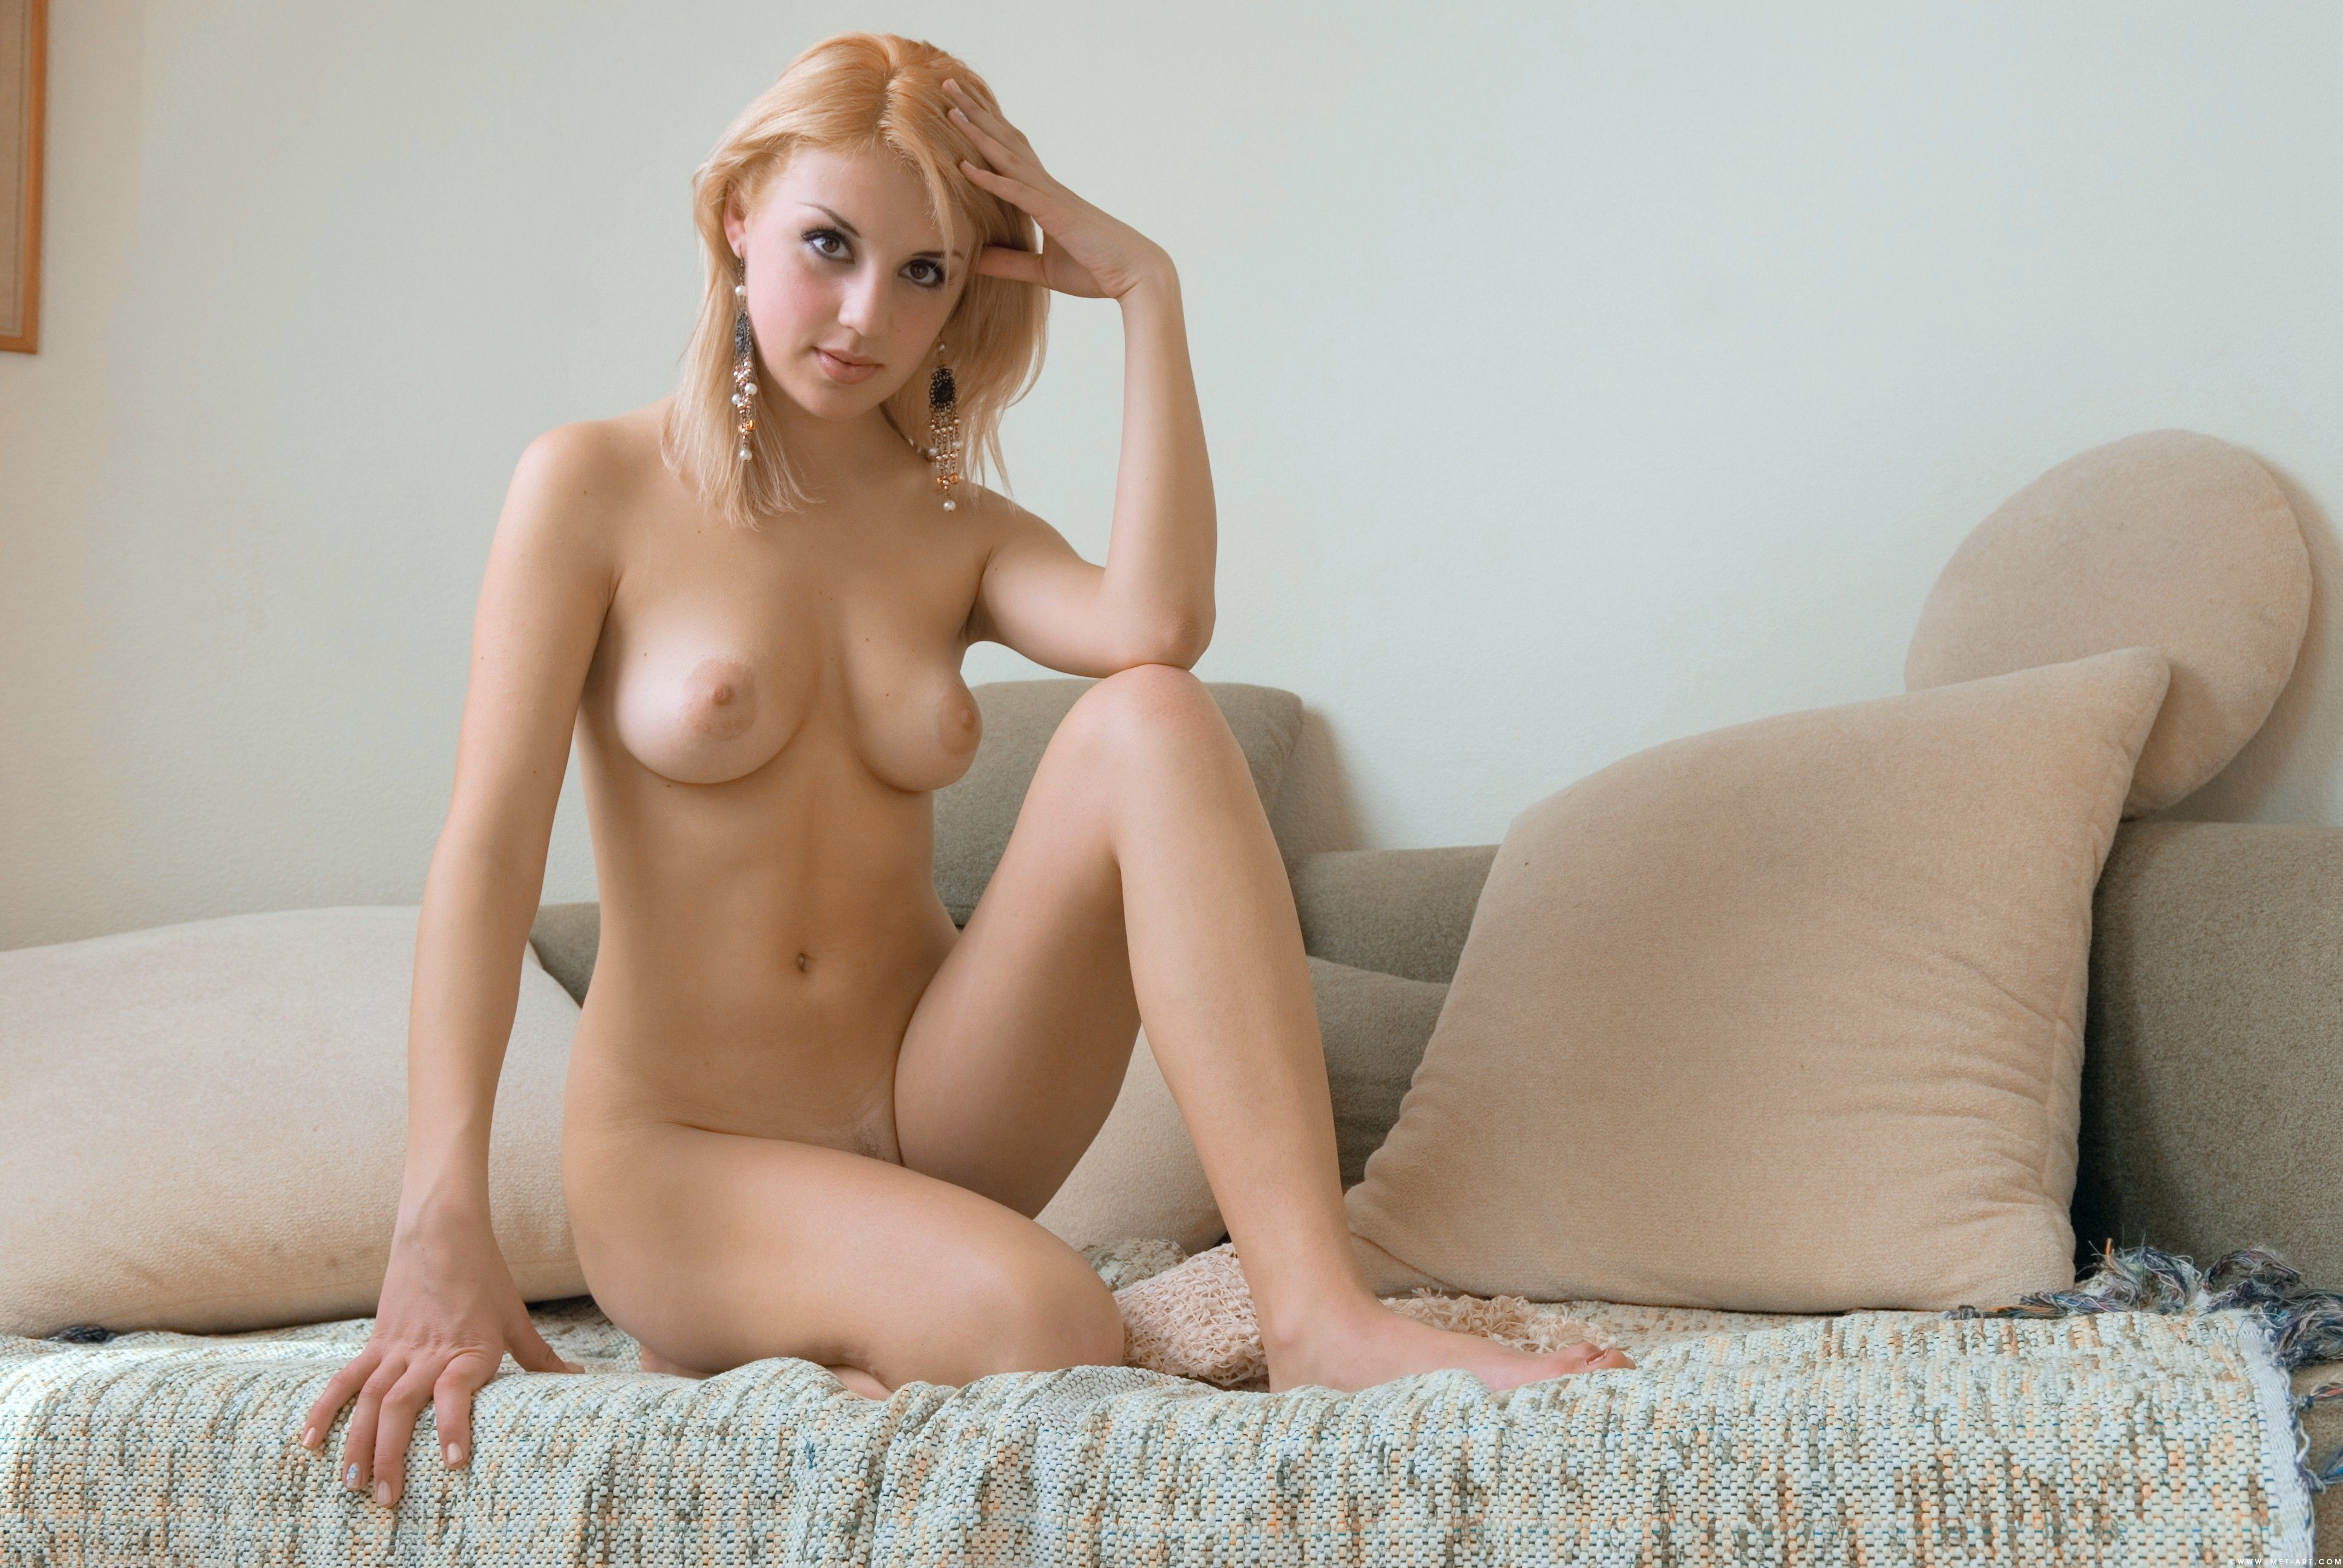 Naked girl on sofa — 11